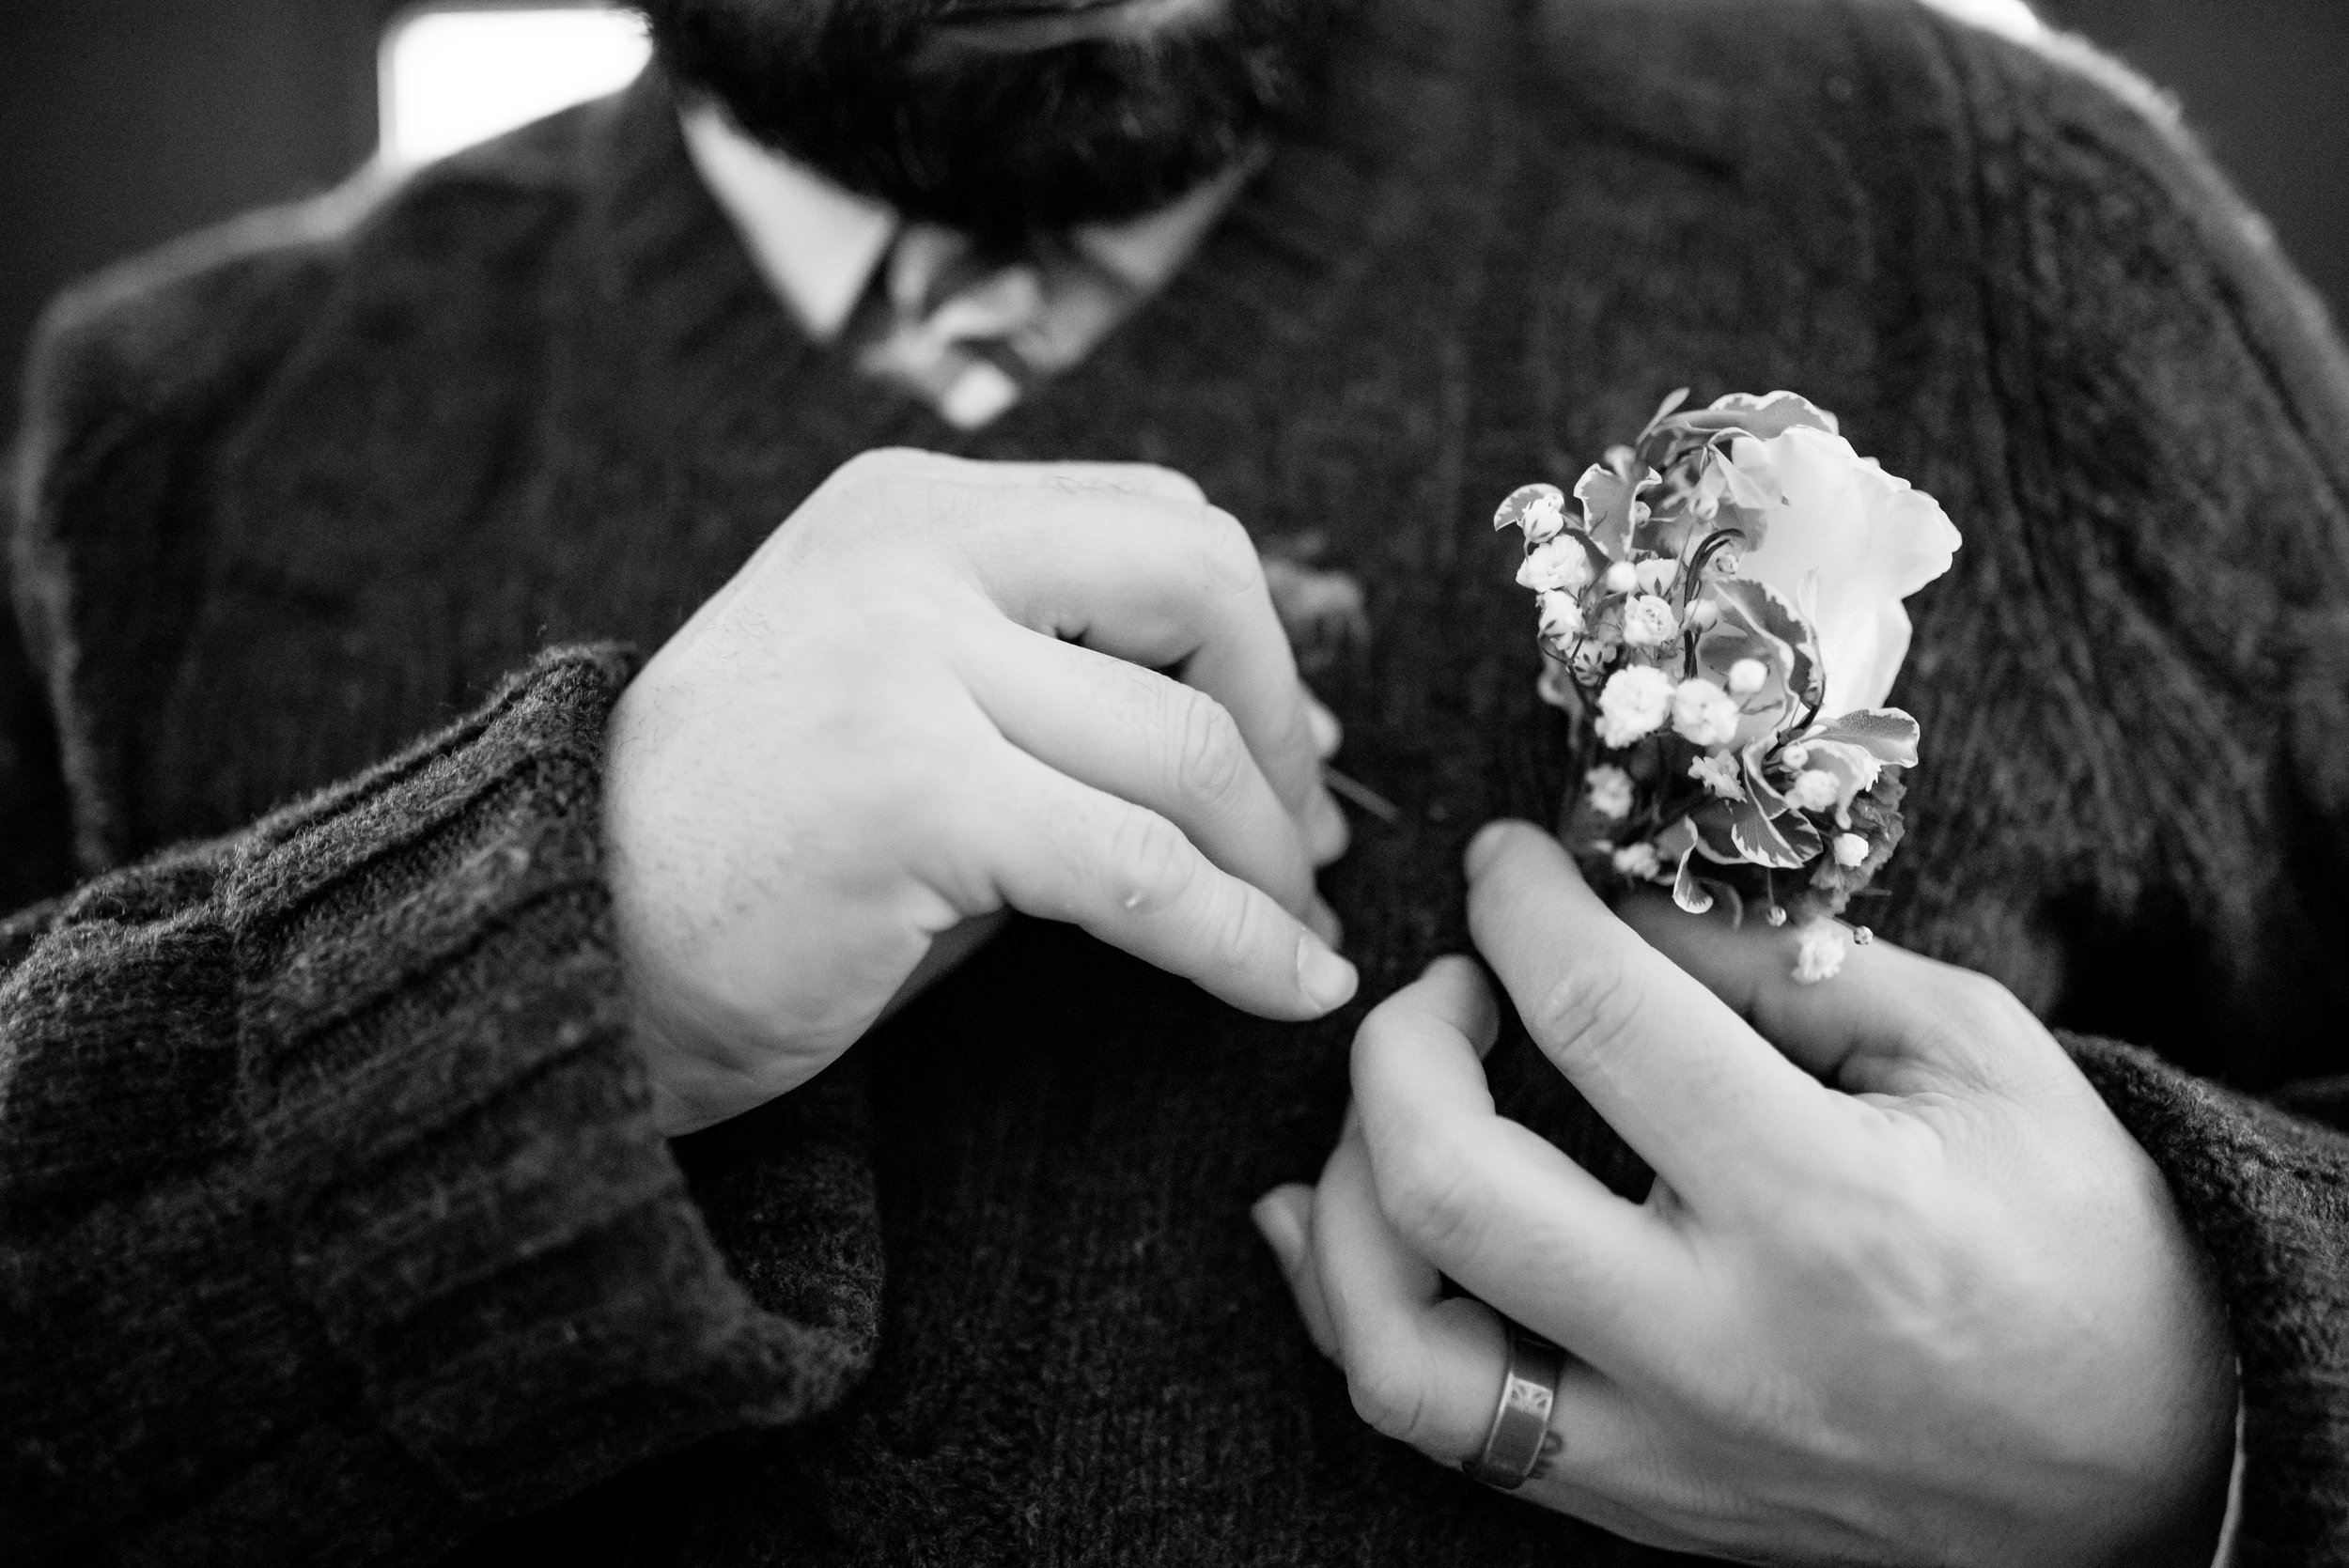 Man pins boutonnière on sweater